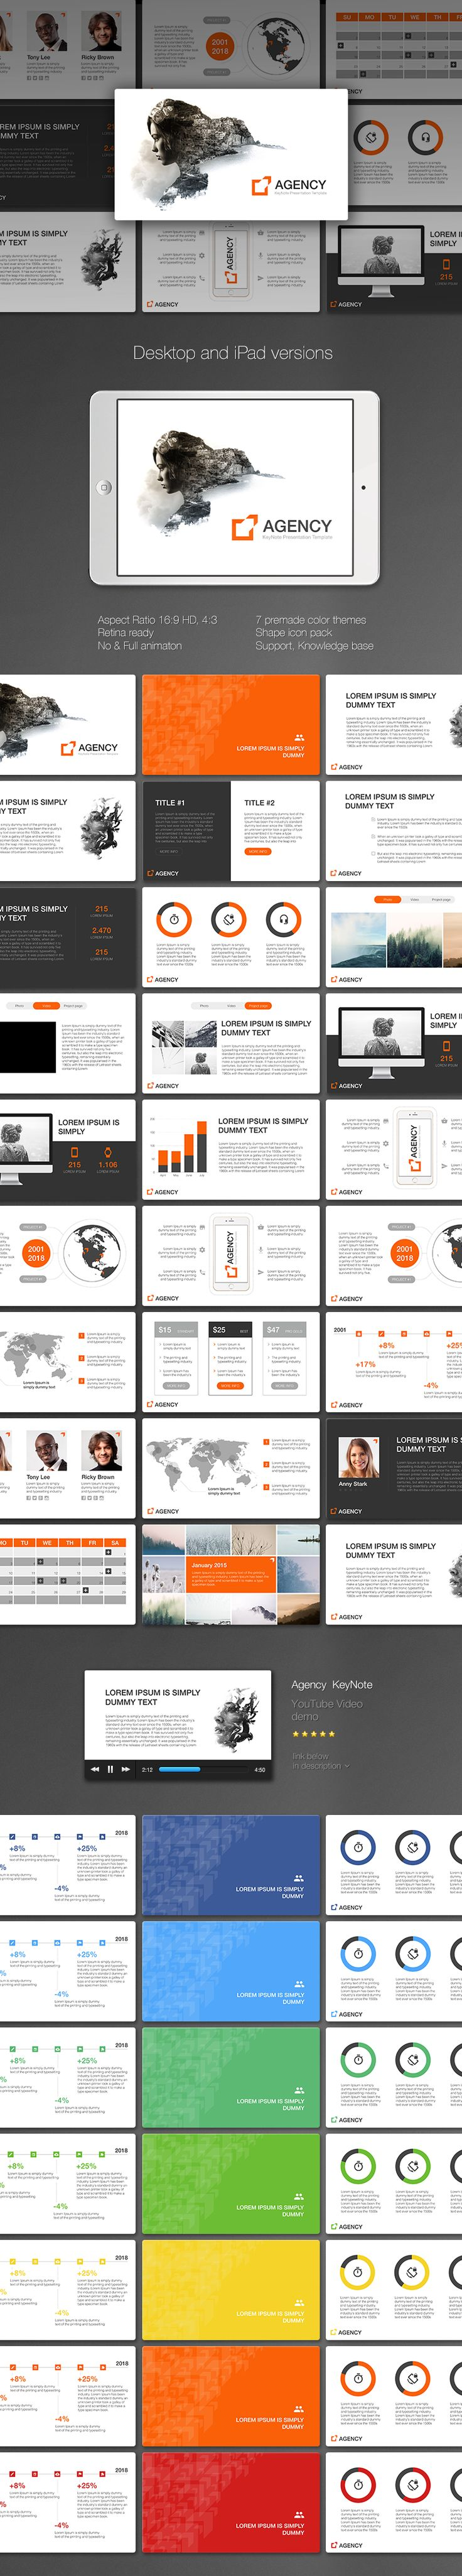 "Download: http://site2max.pro/agency-keynote-template/ ""Agency"" Keynote Template #agency #startup #keynote #key #marketing #ipad #slide"